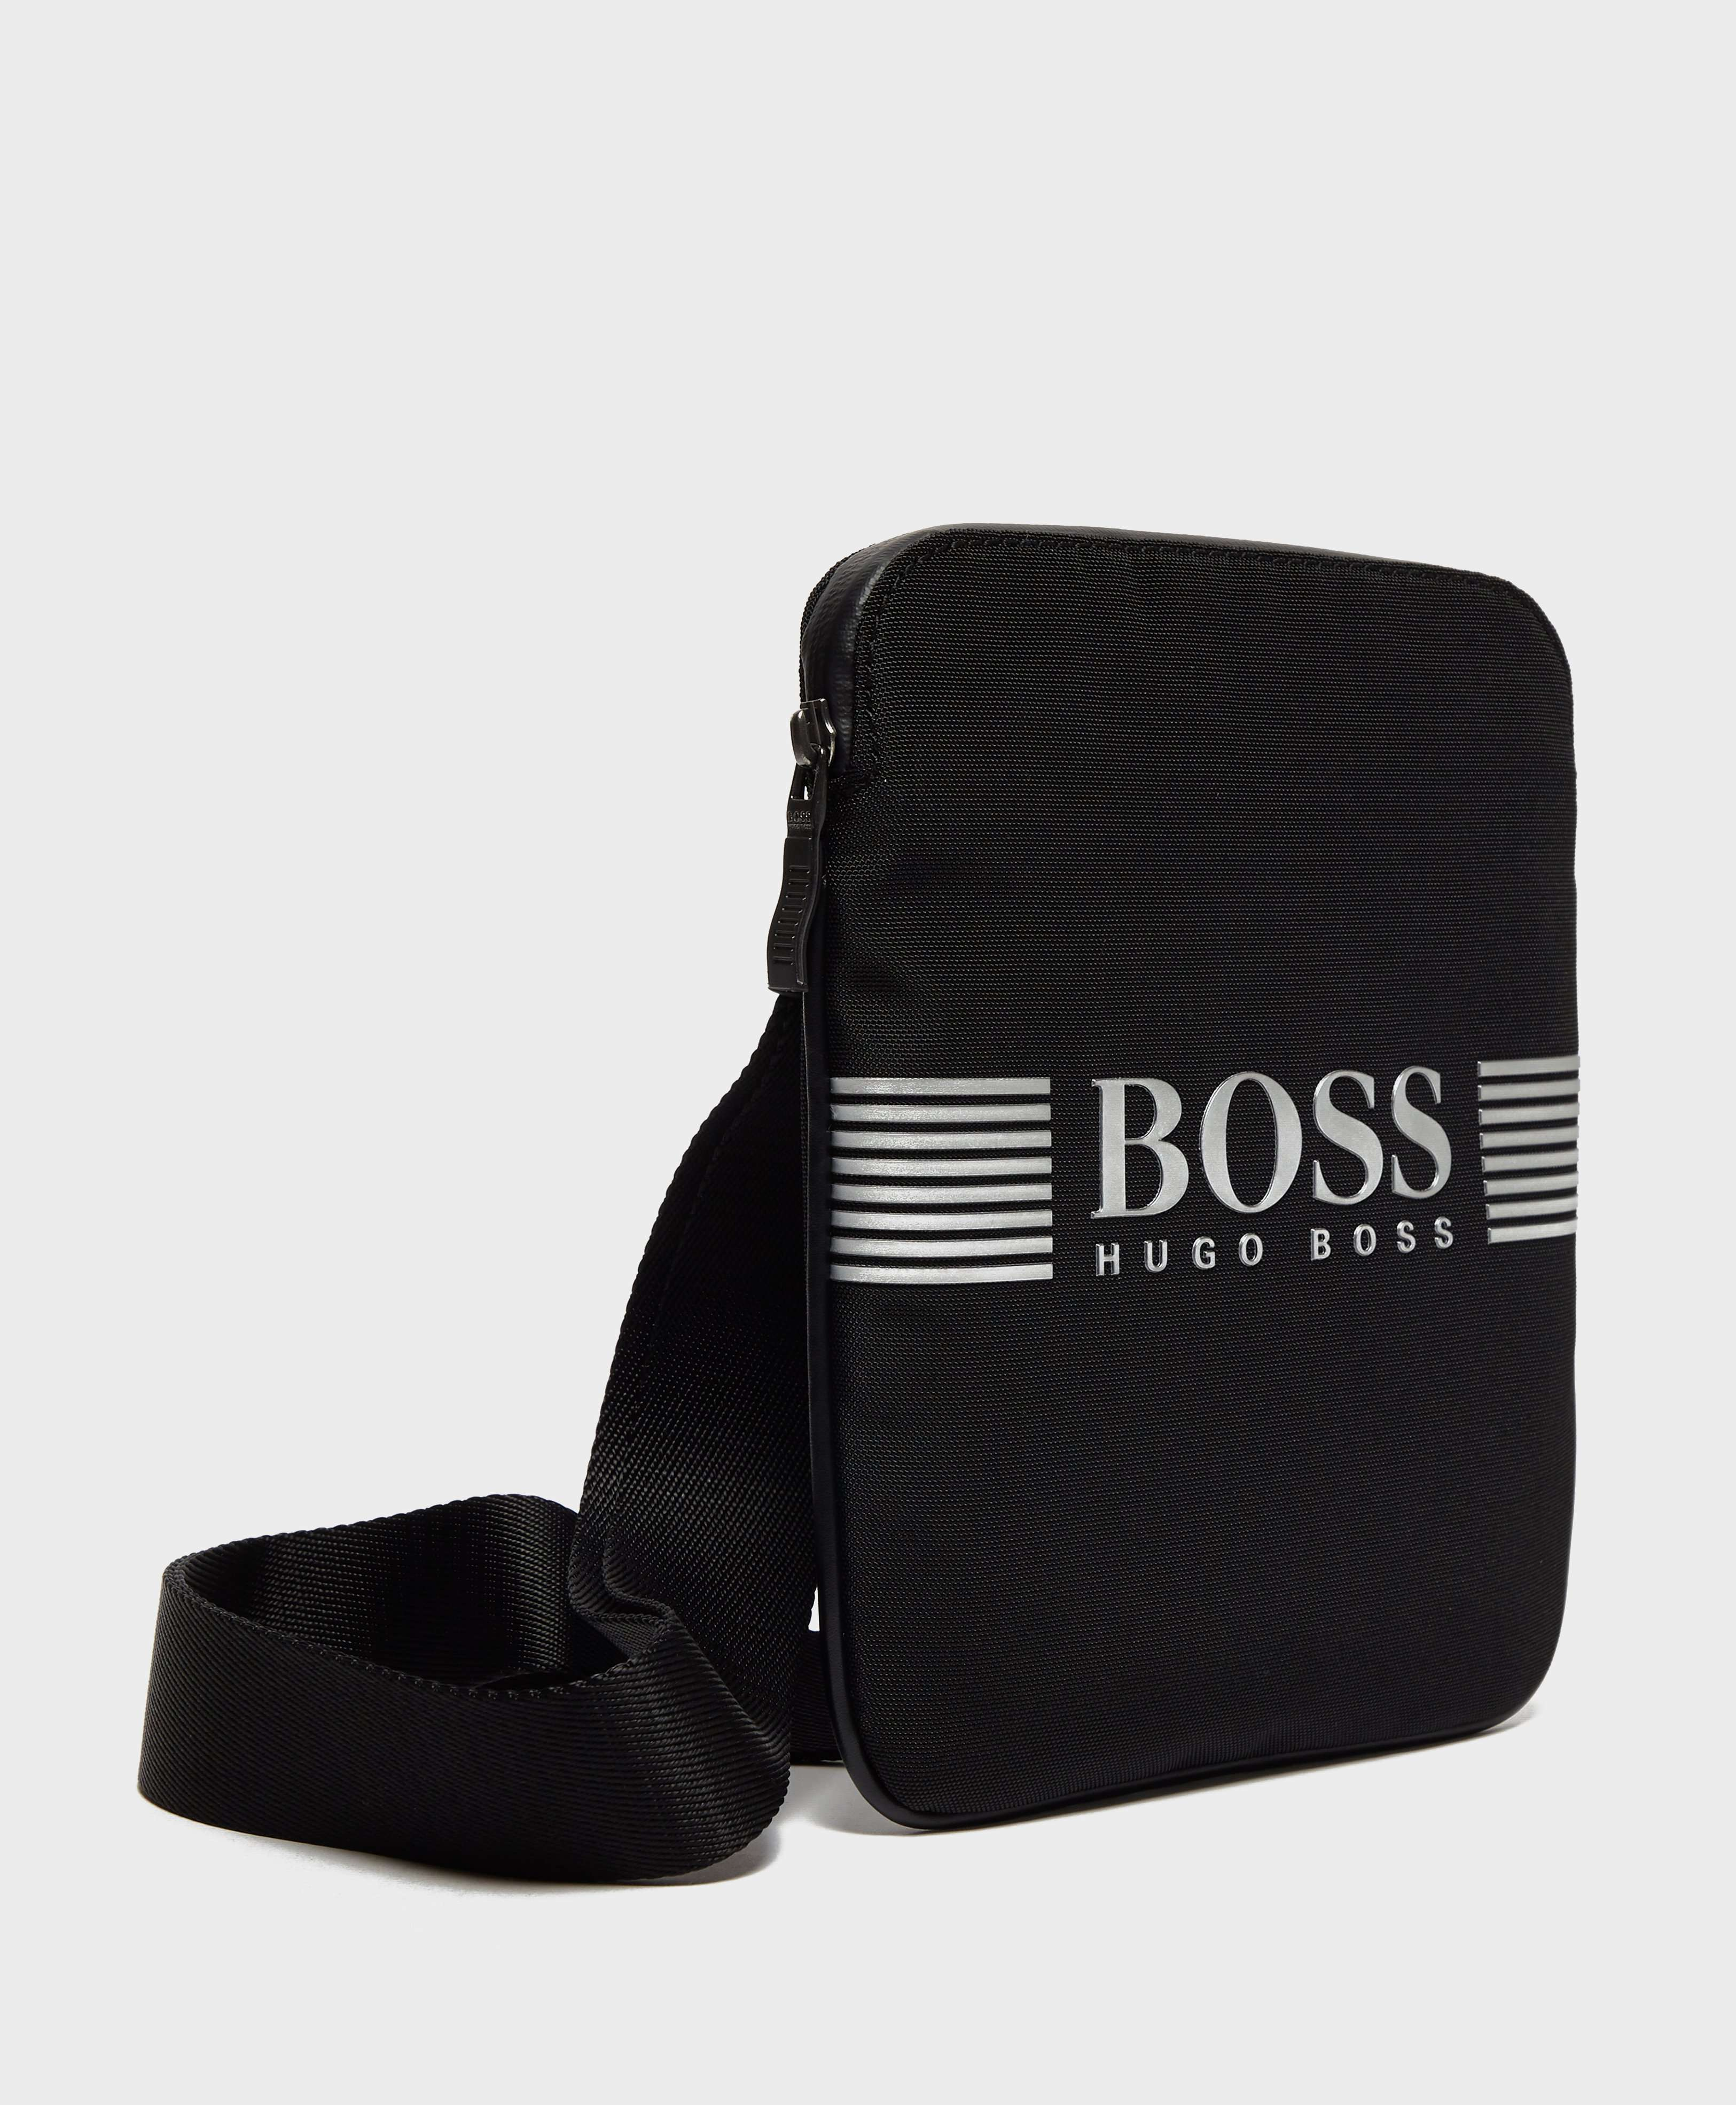 BOSS Pixel Small Item Pouch Bag